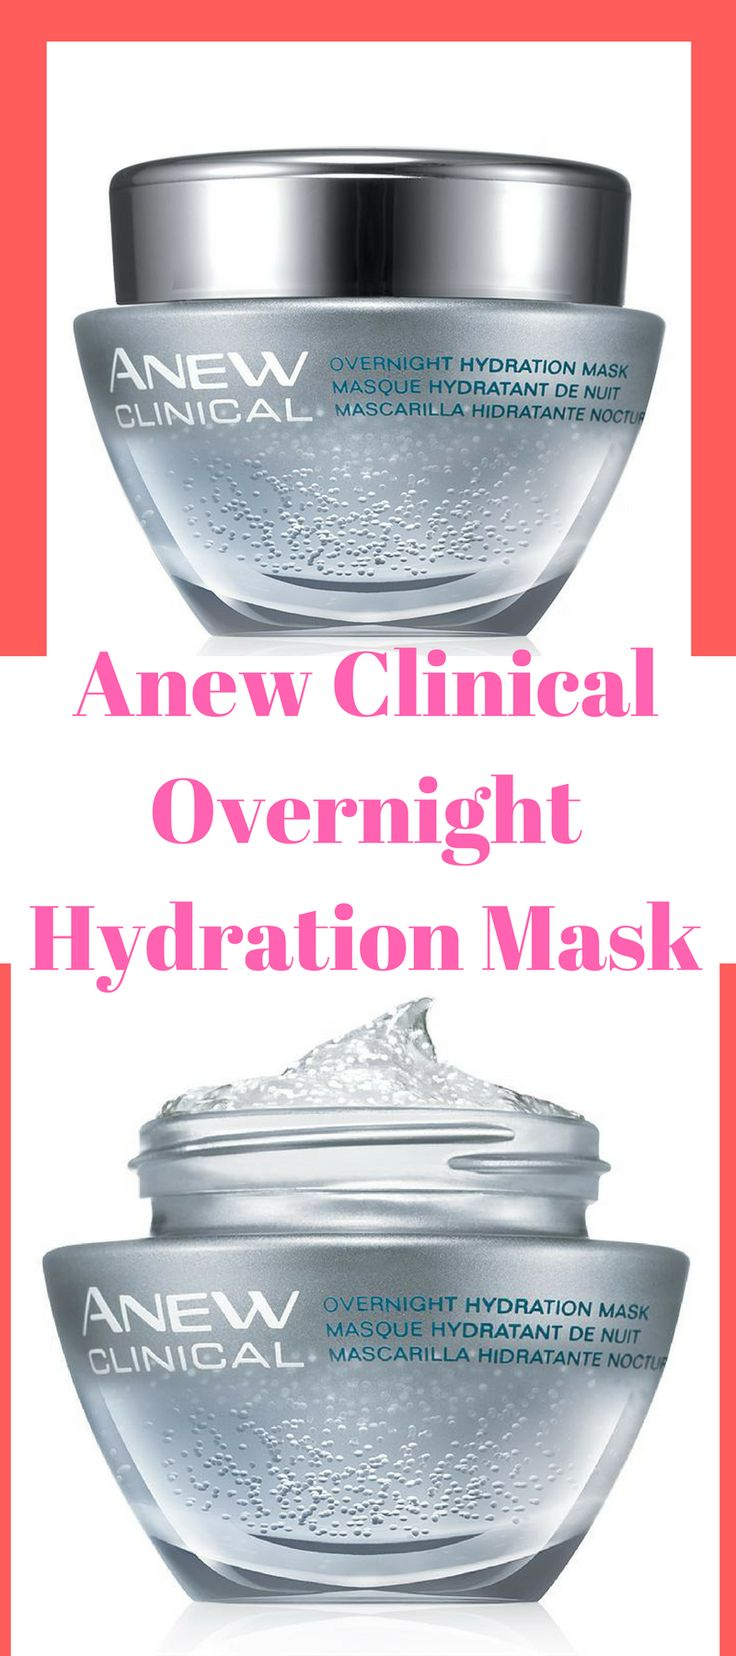 Anew Clinical Overnight Hydration Mask #skincareacne night cream best | night cream | night cream for oily skin | night cream diy | night cream drugstore | Night Cream to Help Skin Issues | Night Creams | Night Cream | Night creams |